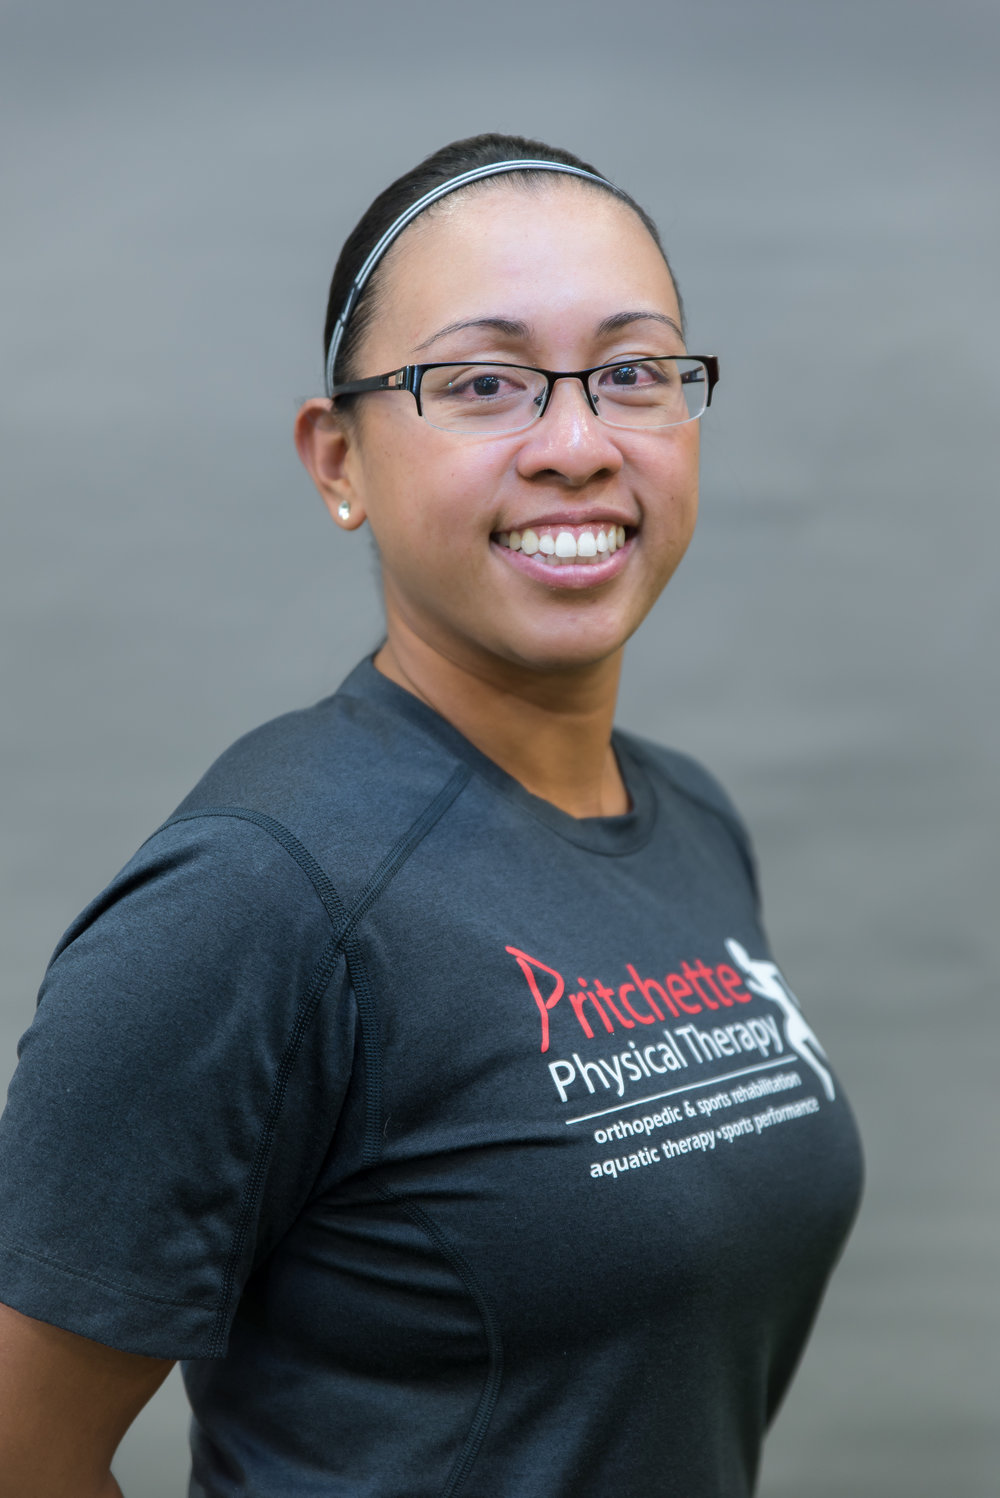 janese-quiogue_physical-therapy-technician.jpg